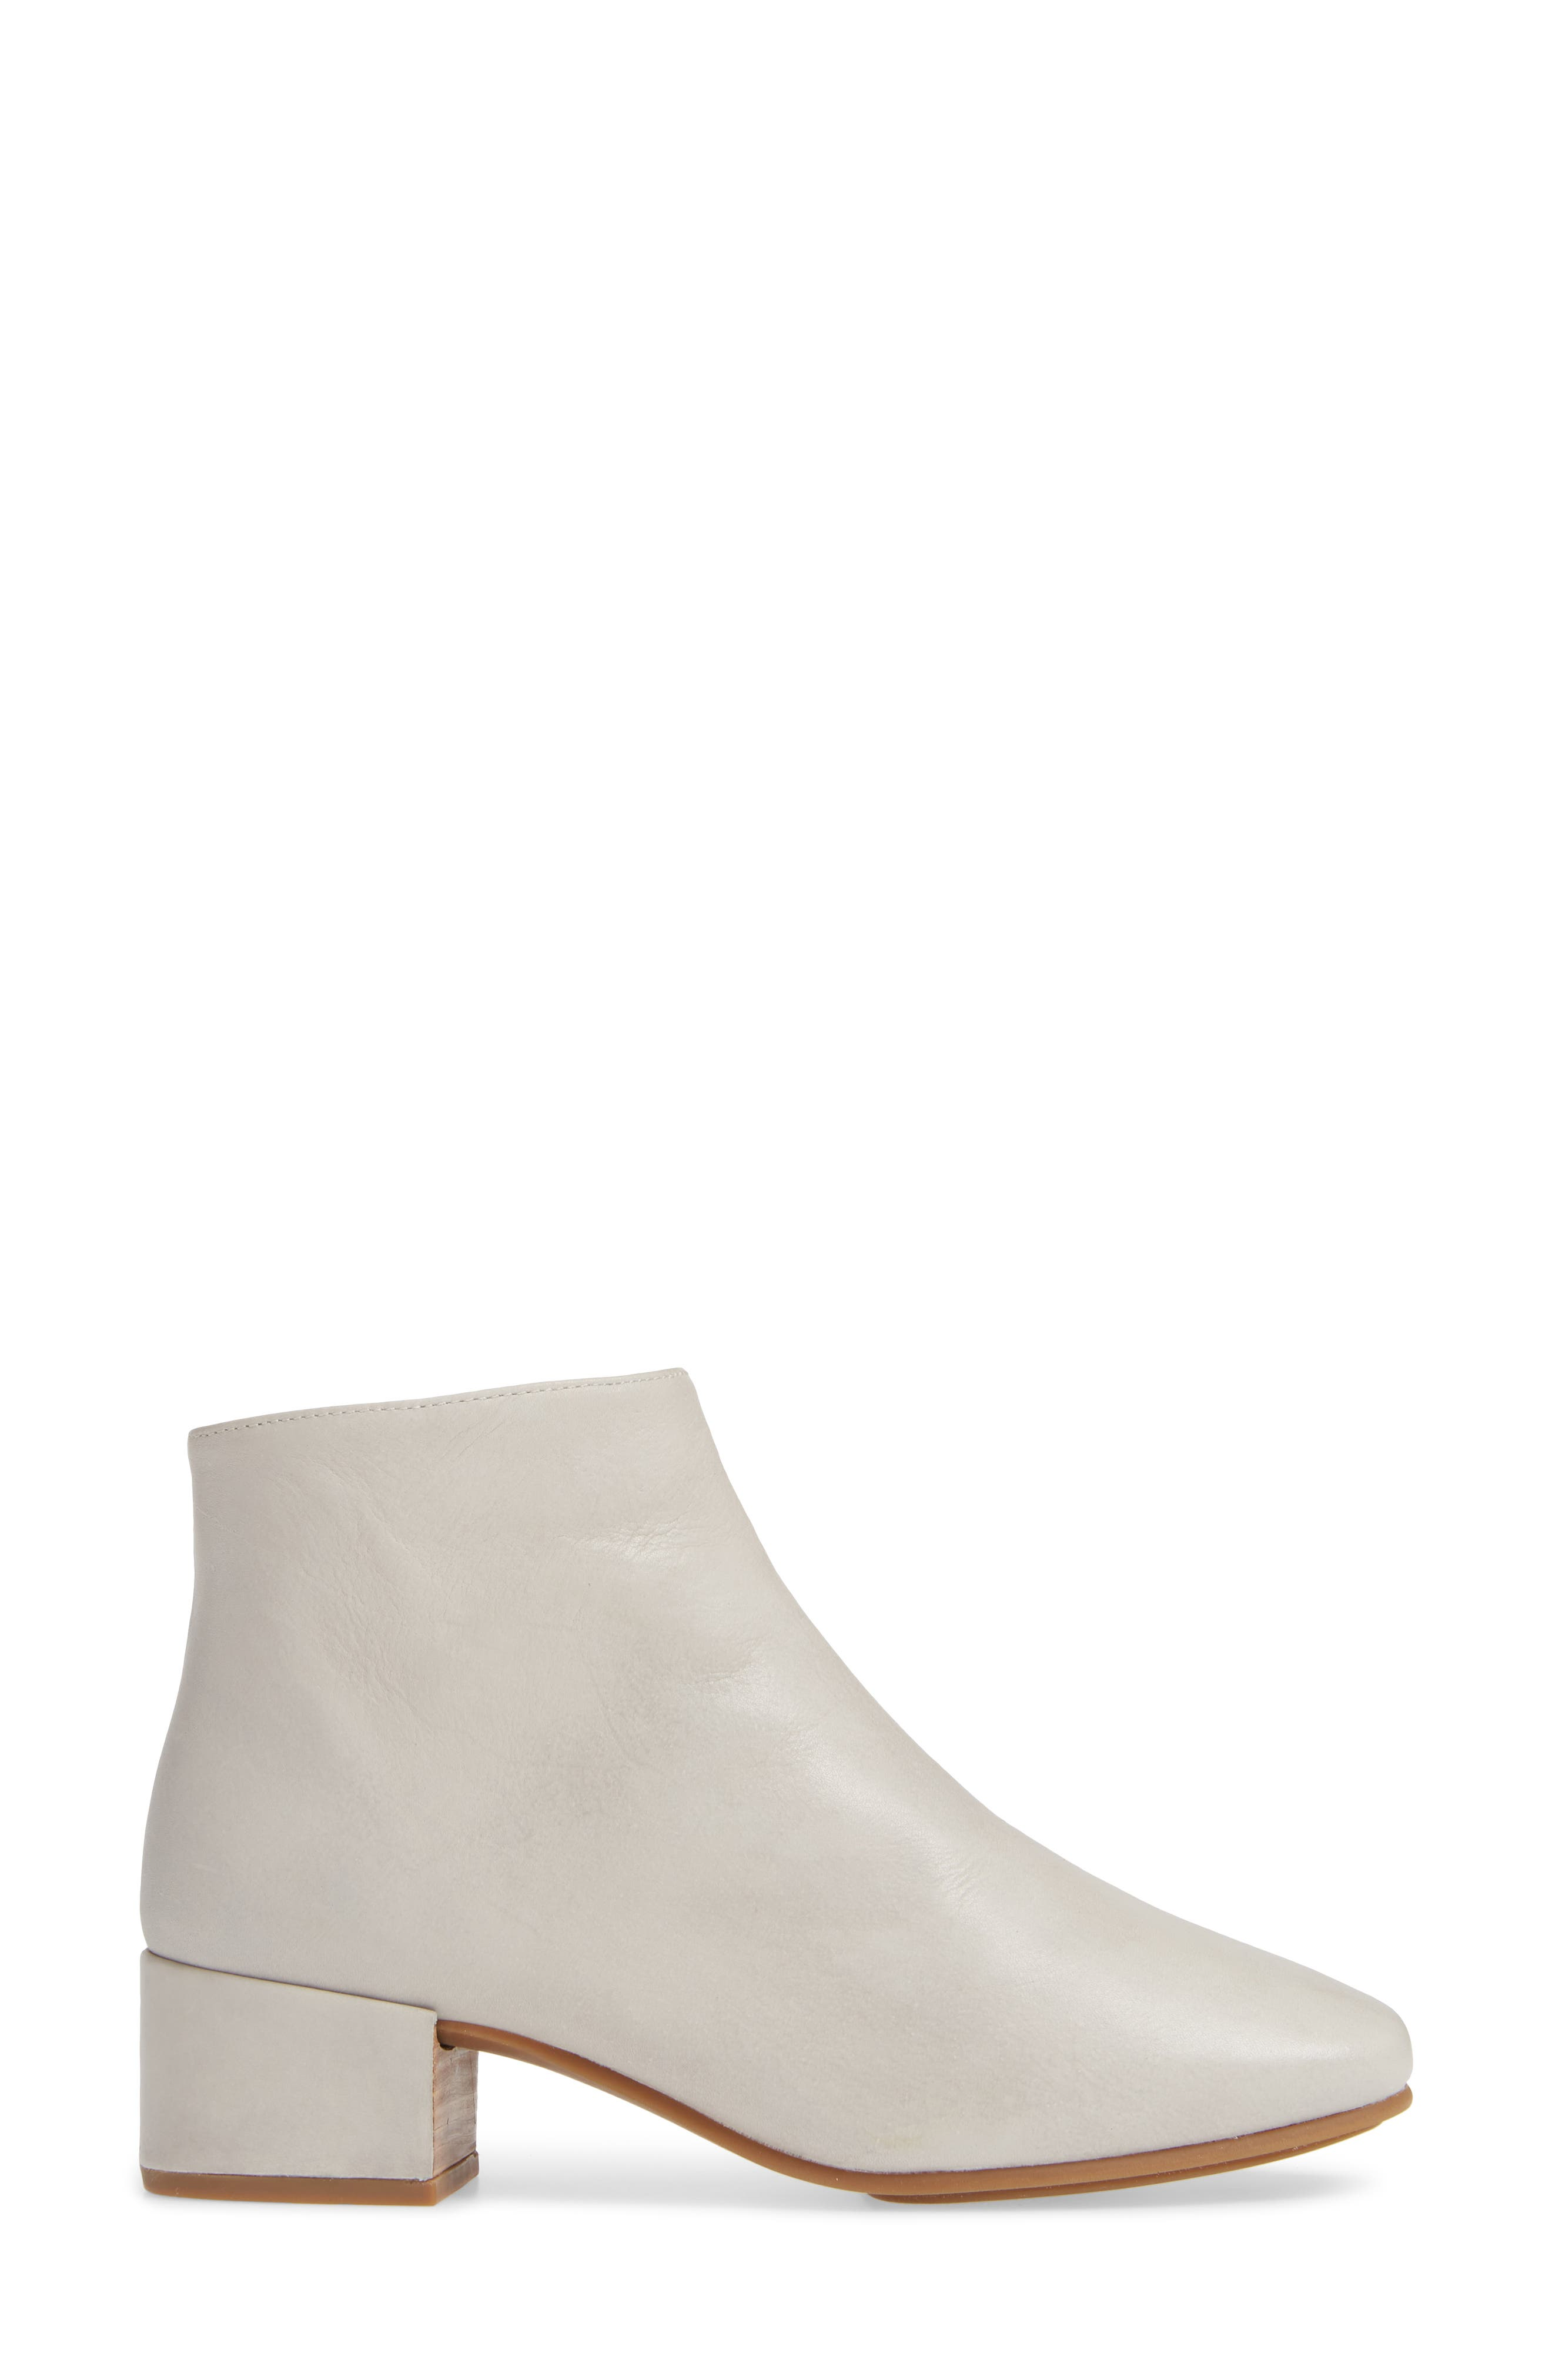 GENTLE SOULS BY KENNETH COLE, Ella Bootie, Alternate thumbnail 3, color, LIGHT GREY LEATHER